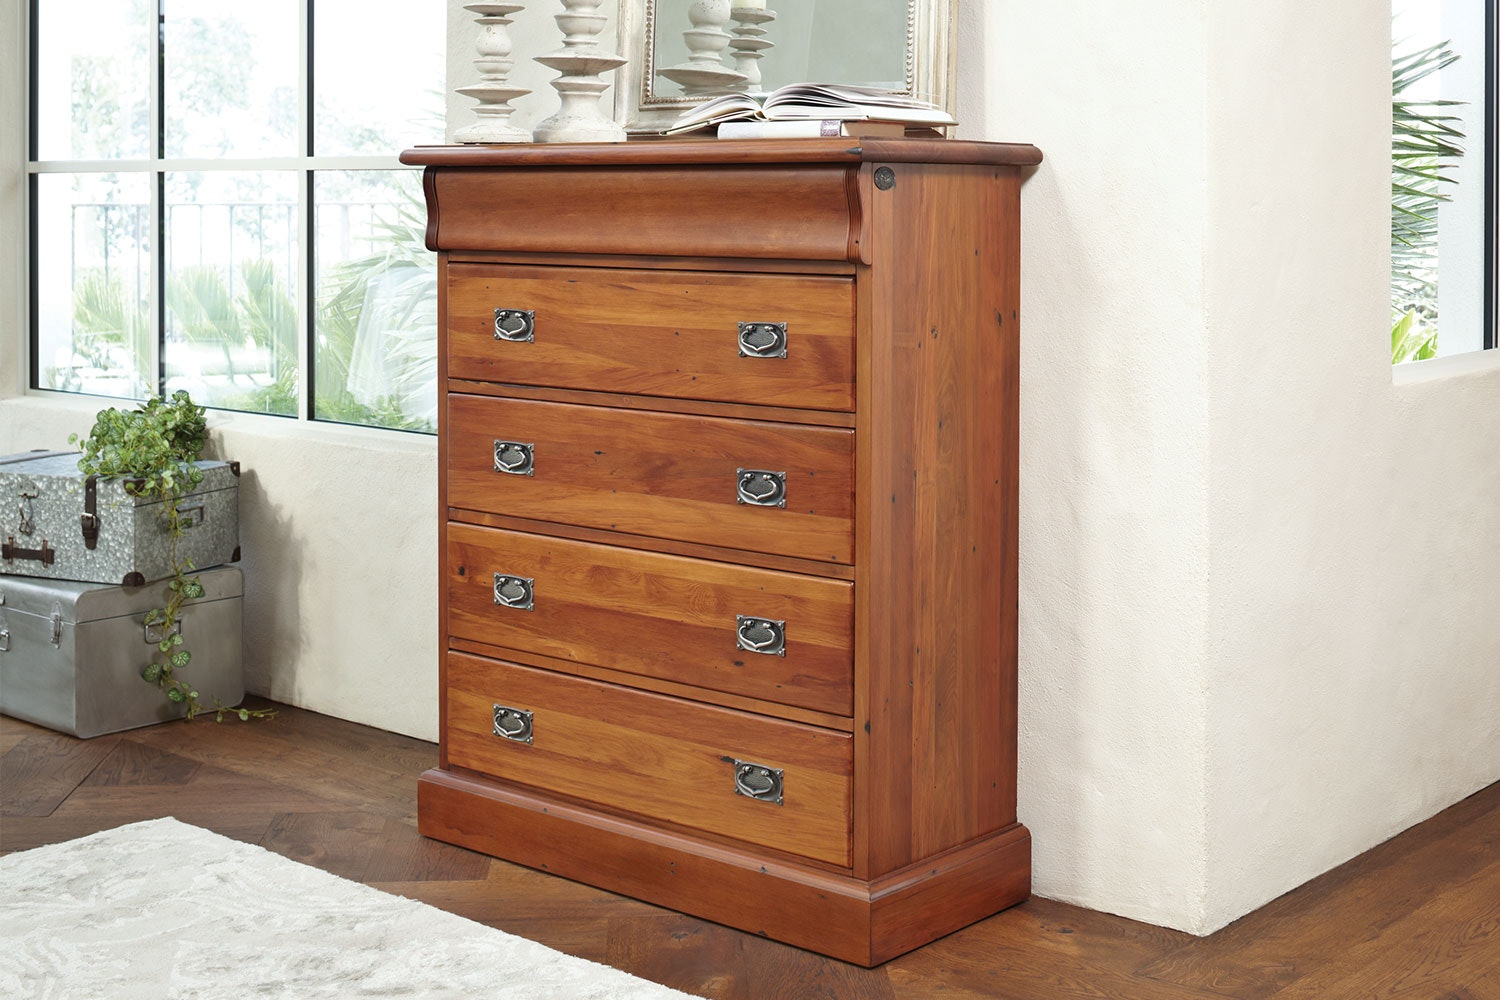 Clevedon 5 Drawer Chest by Woodpecker Furniture